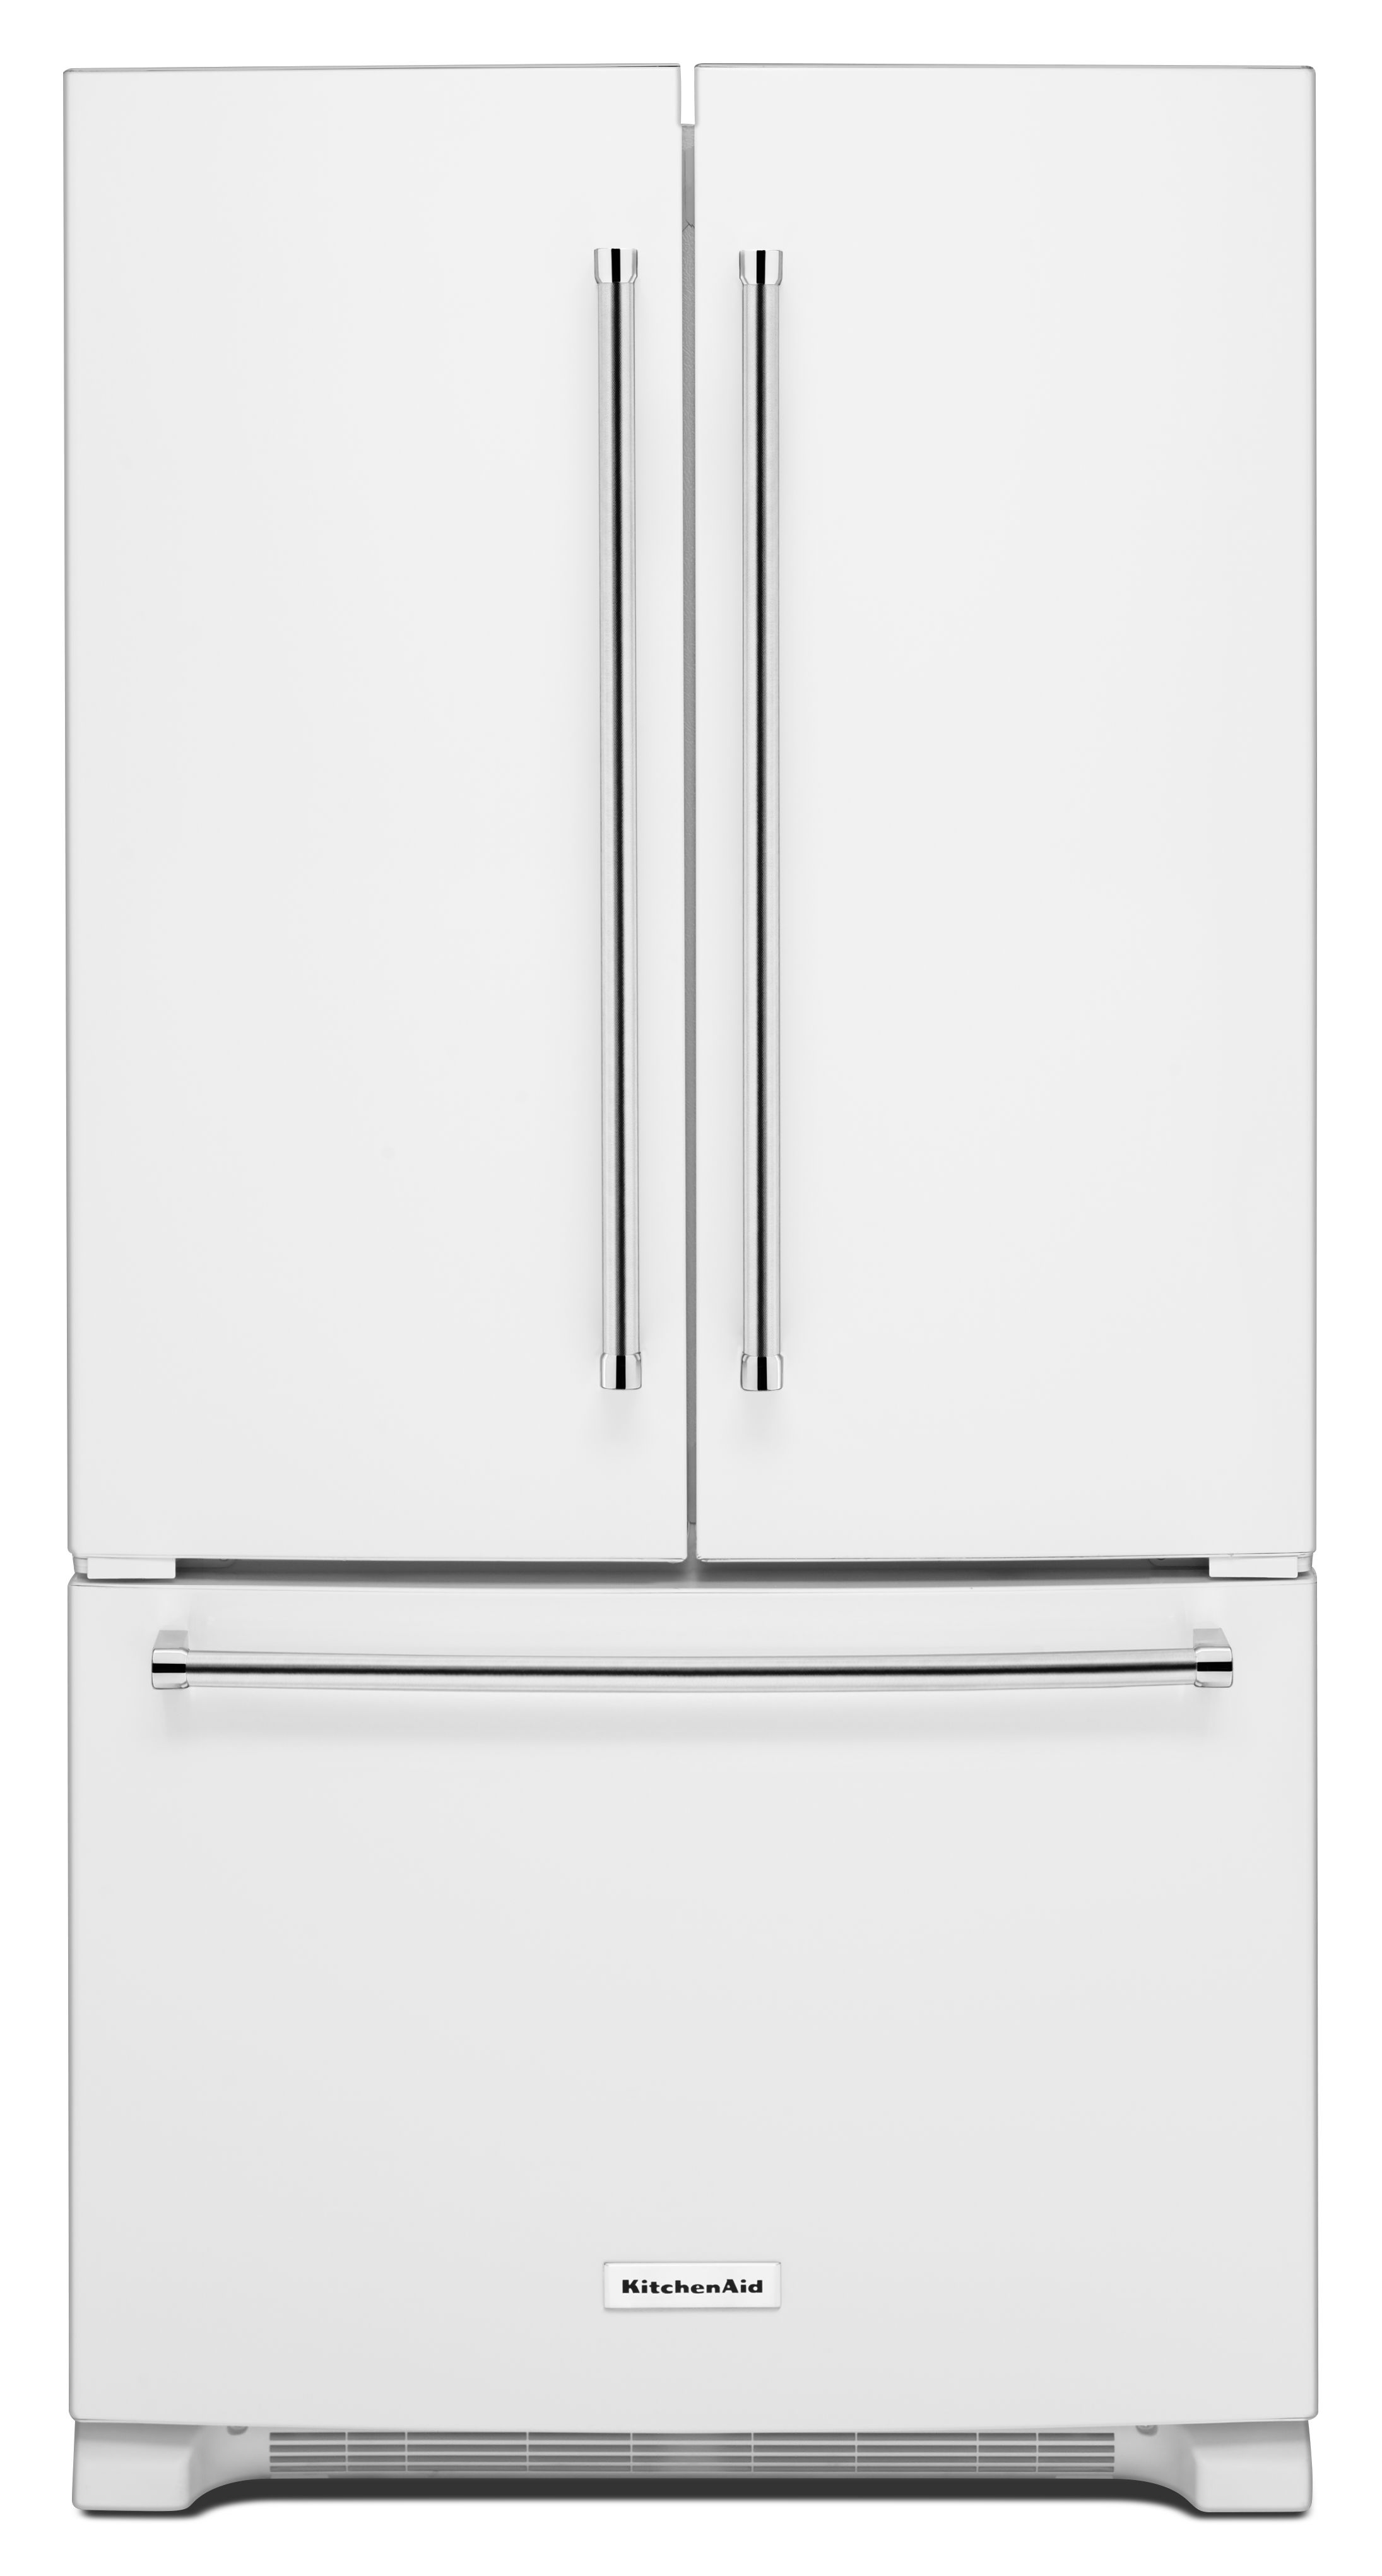 Kitchen Aid 200 Cu Ft Counter Depth French Door Refrigerator